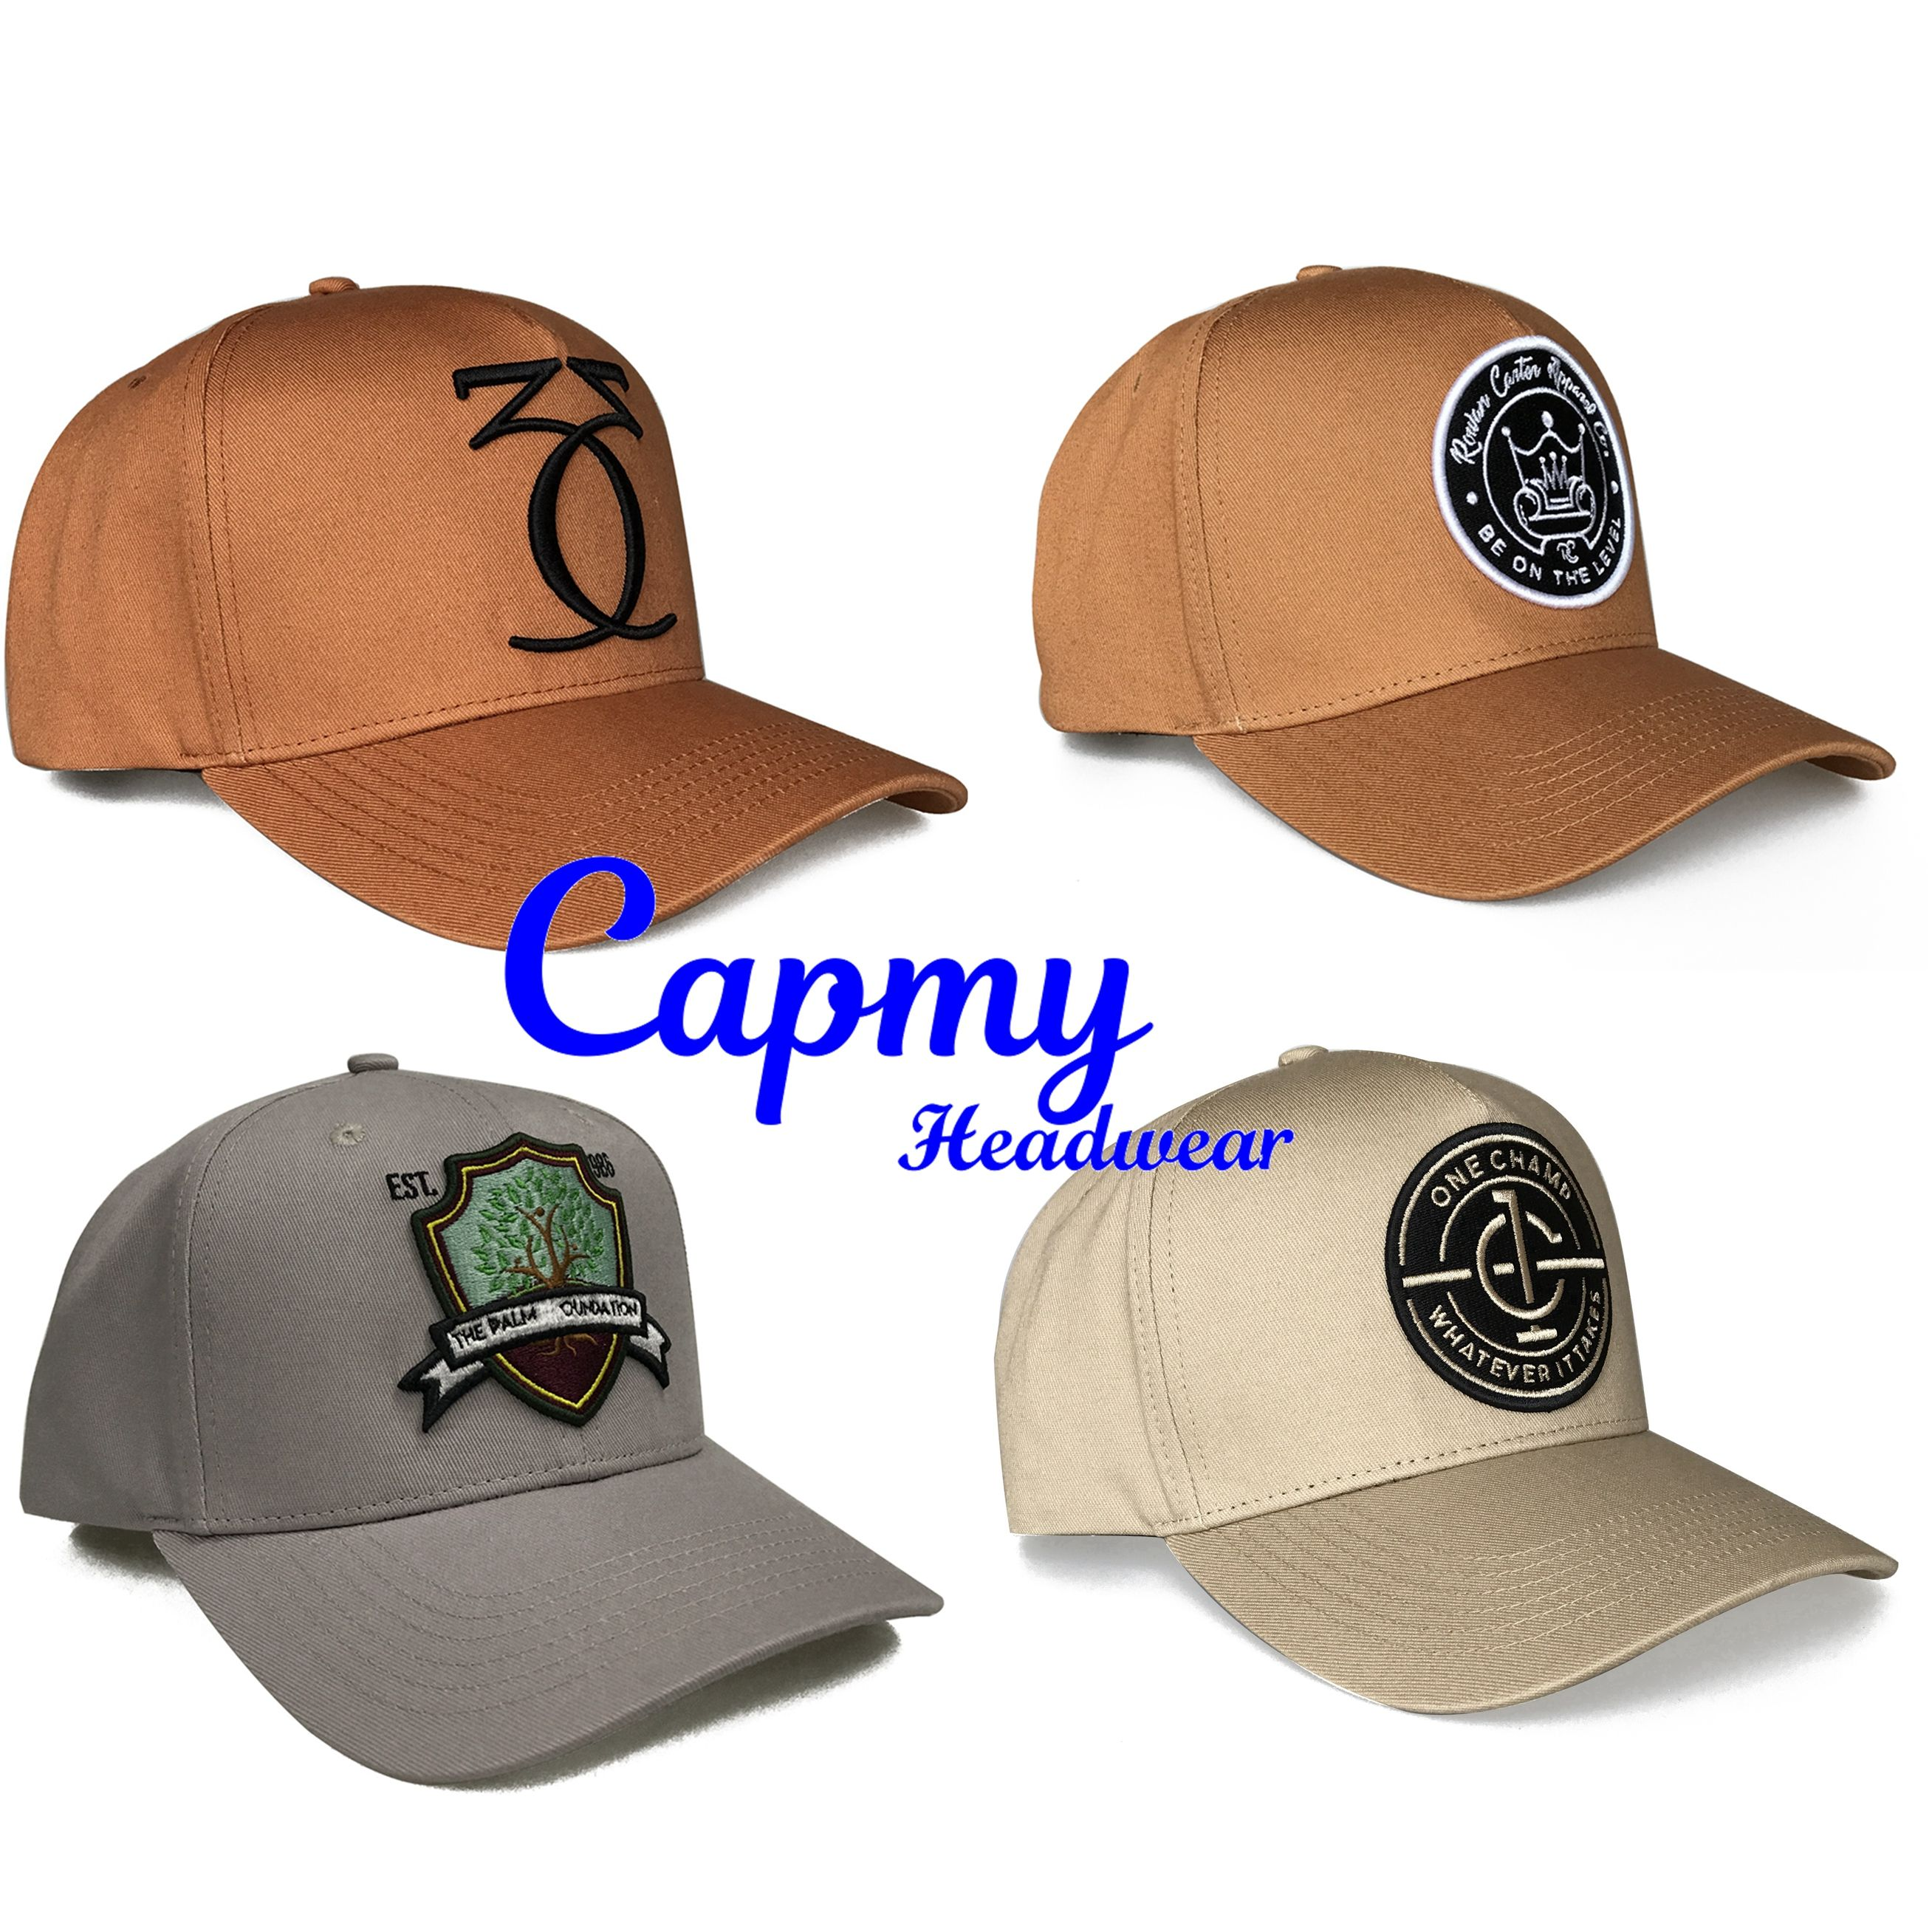 New Design brown a frame baseball cap hat 5 panel style women men caps hats , hat wheat